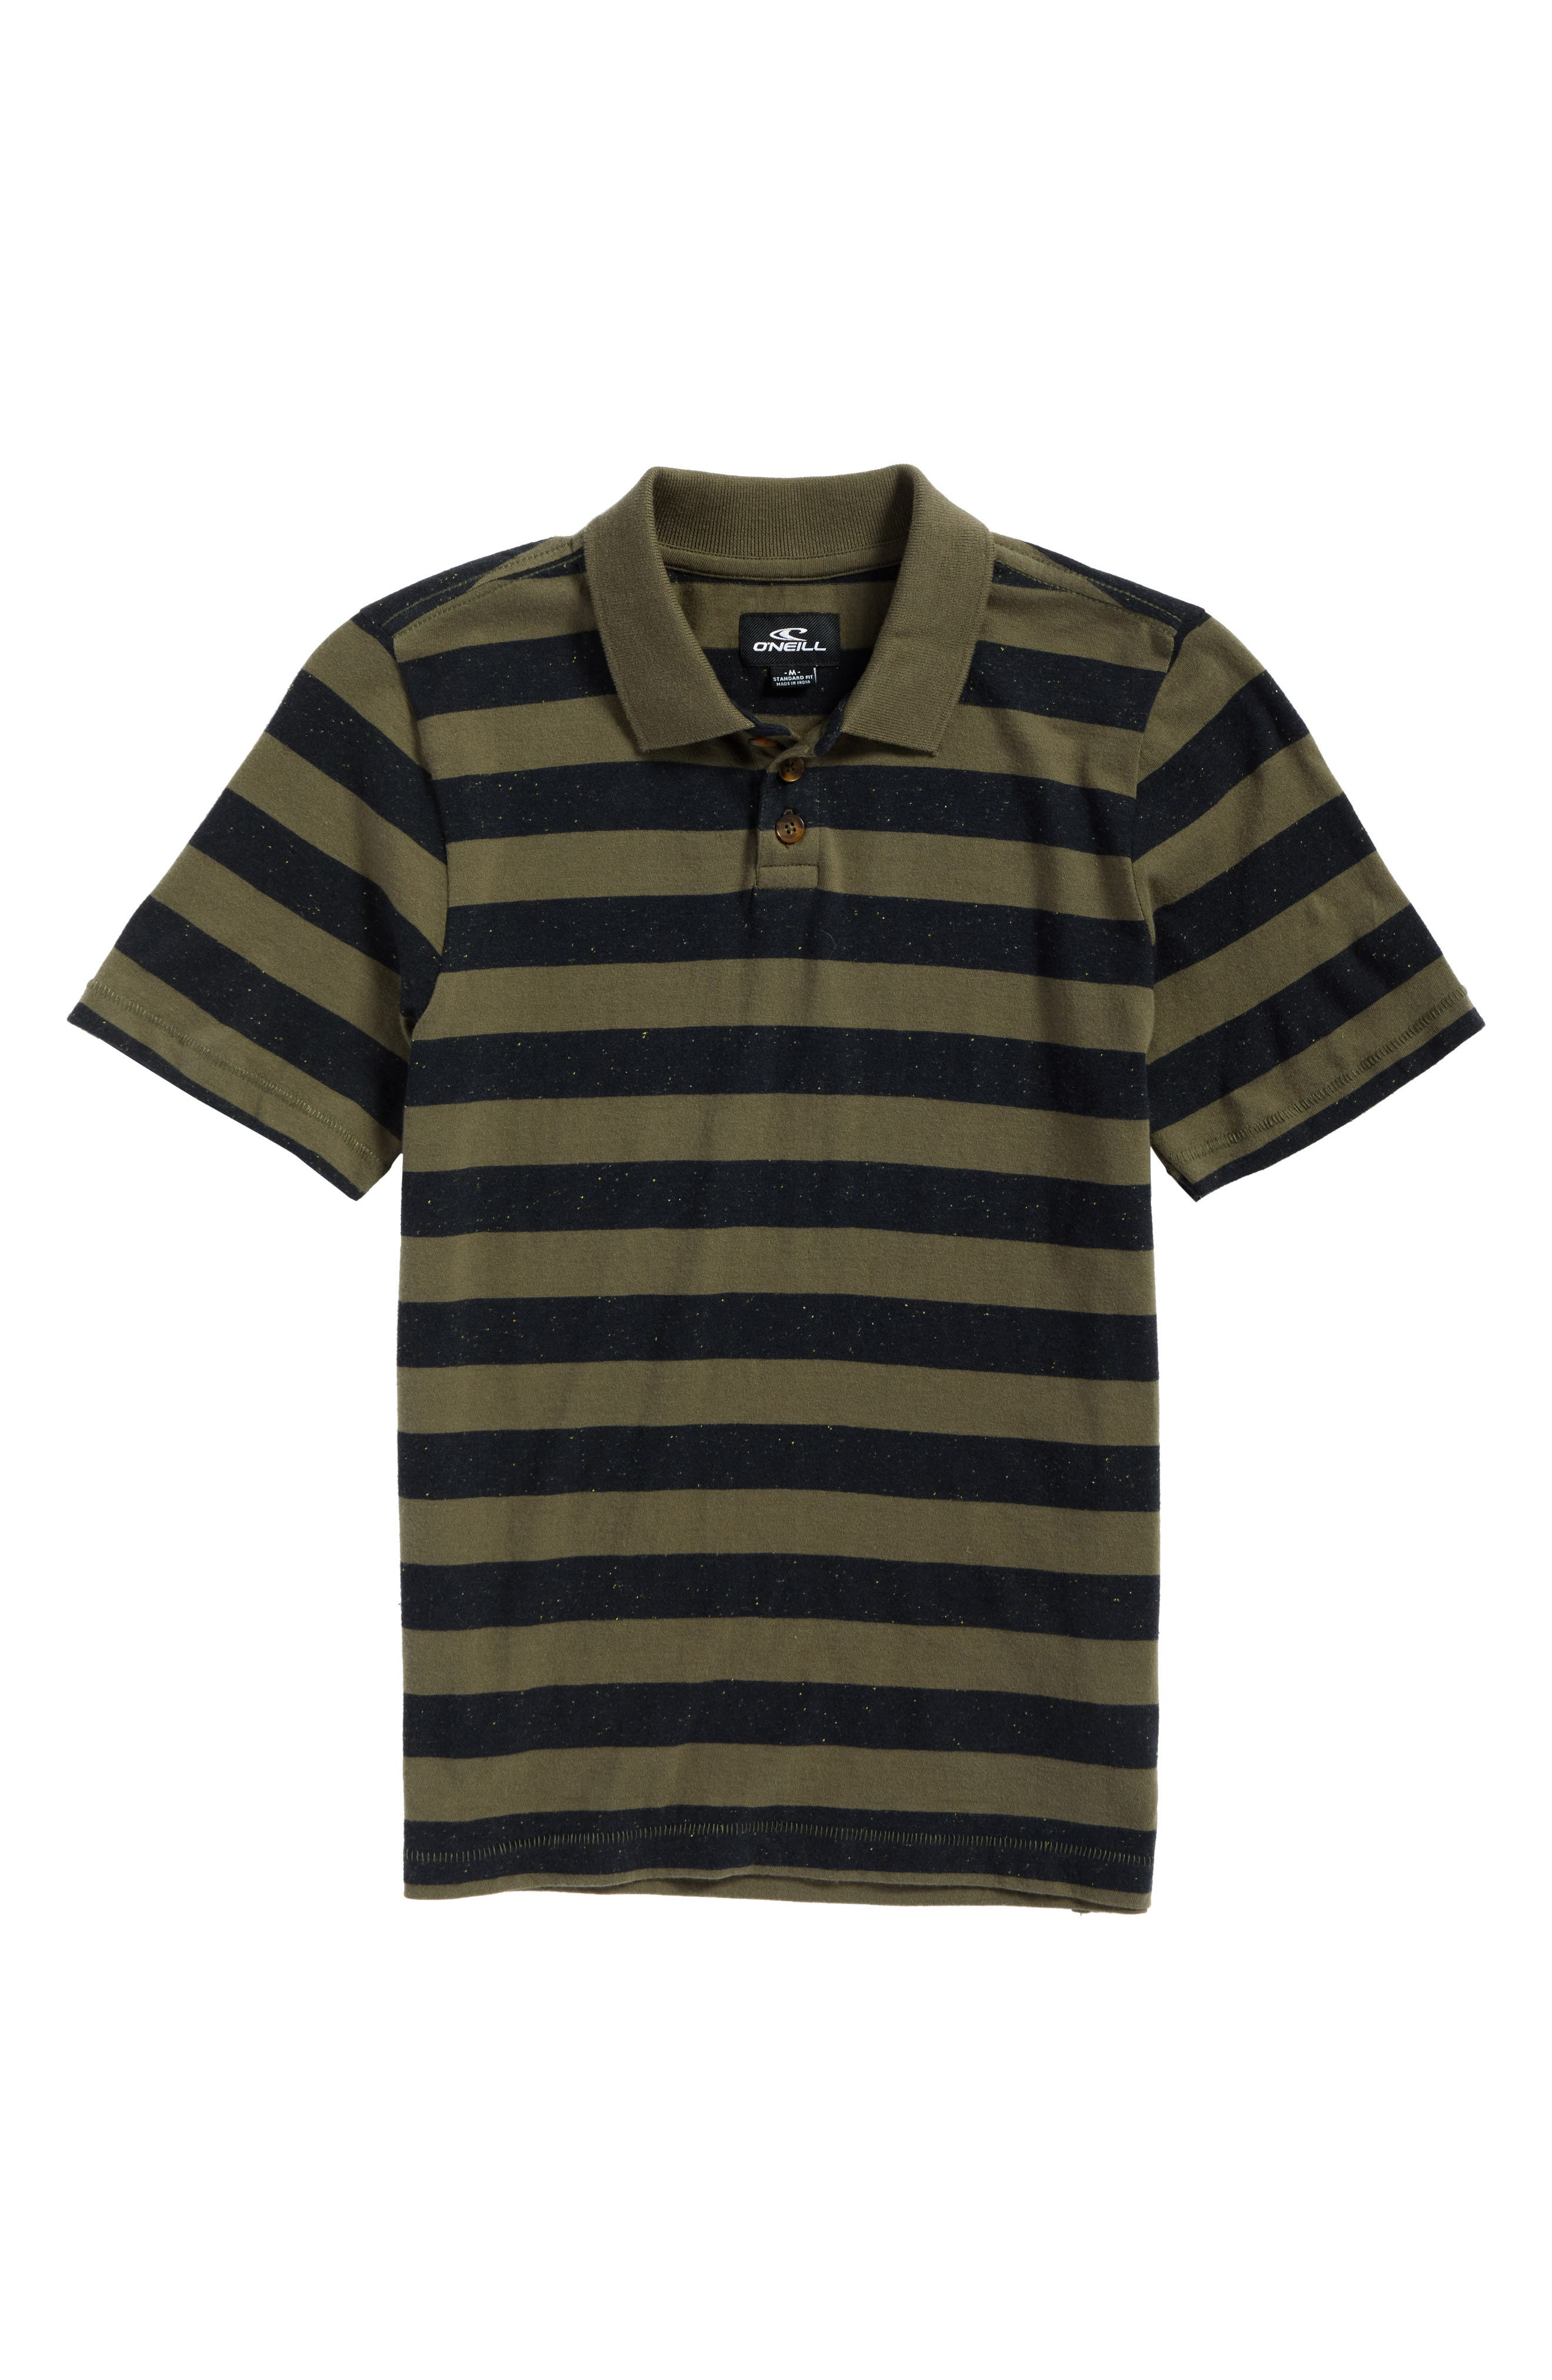 Scoundrel Striped Polo,                             Main thumbnail 1, color,                             Army Green